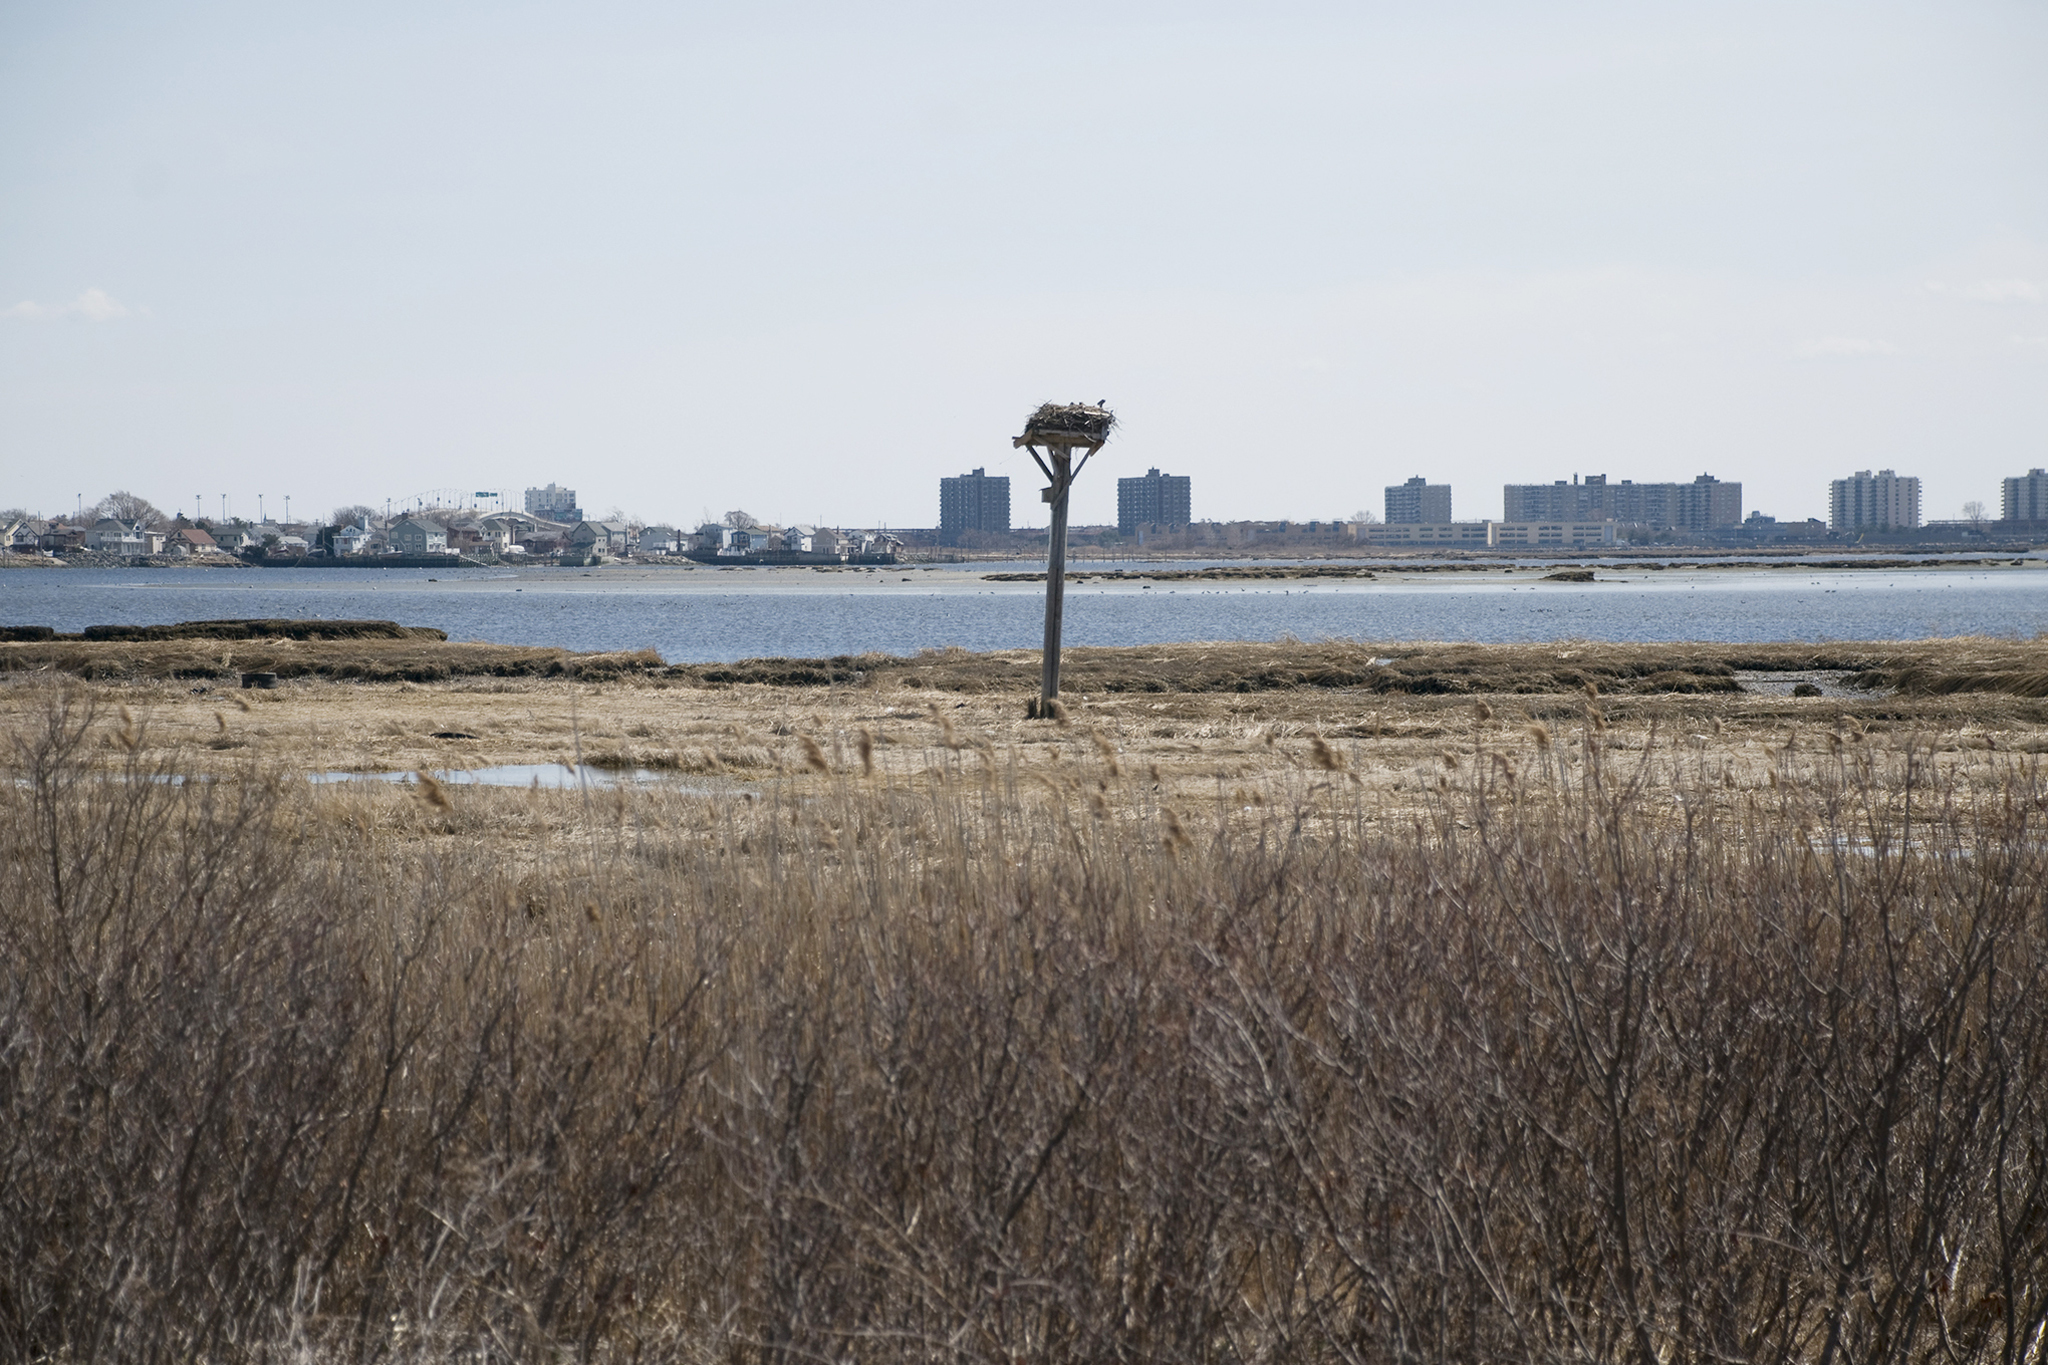 Bird-watch at Jamaica Bay Wildlife Refuge and camp at Floyd Bennett Field